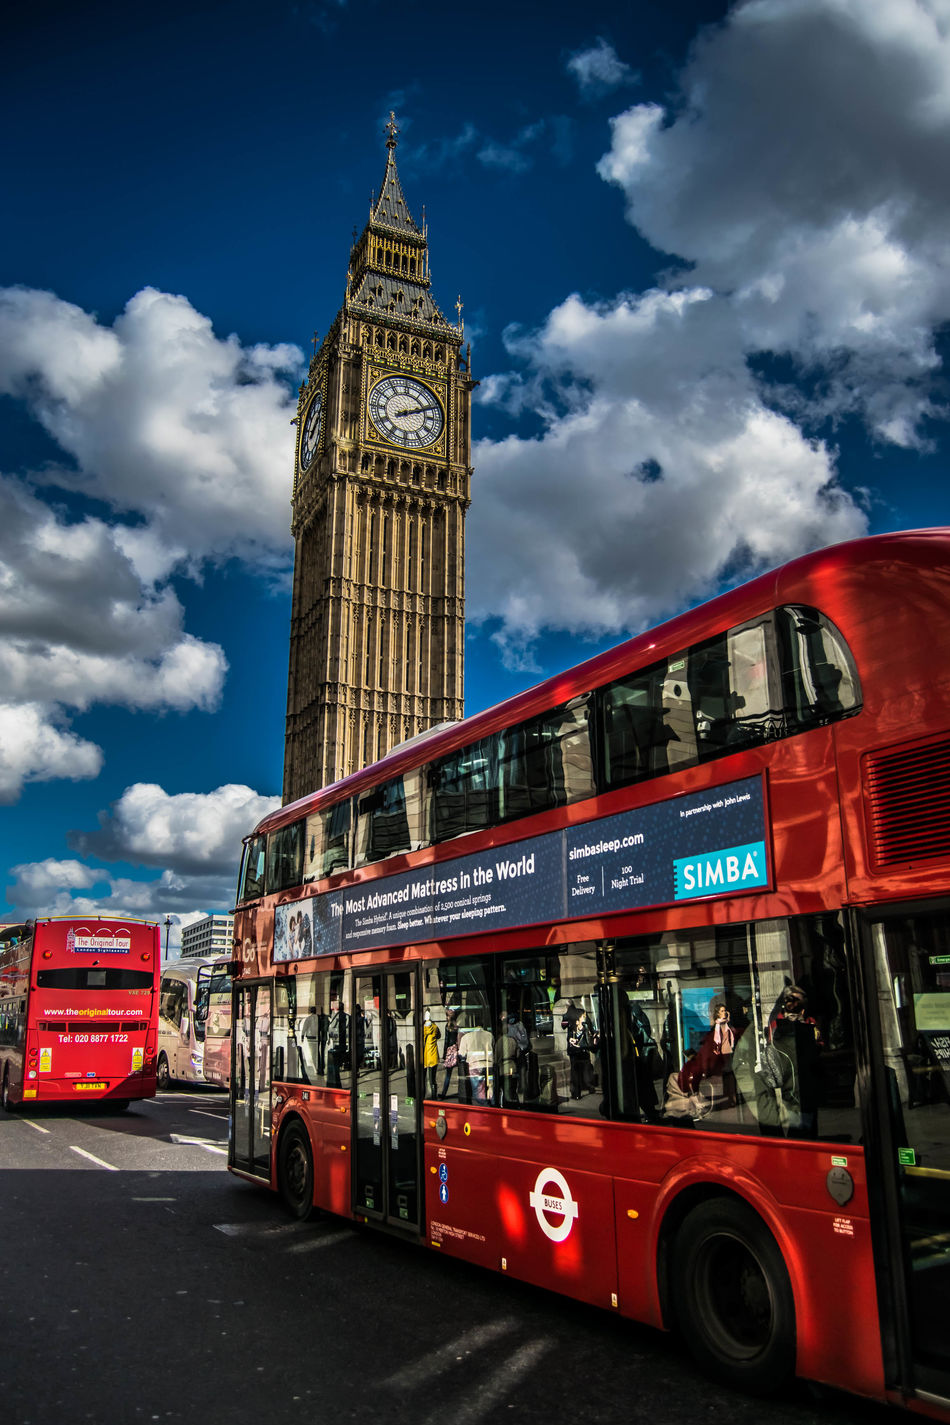 Architecture Building Exterior City City Life Clock Clock Tower Cloud - Sky Cultures Day Double-decker Bus London Bus No People Outdoors Red Sky Time Tower Travel Travel Destinations Westminster